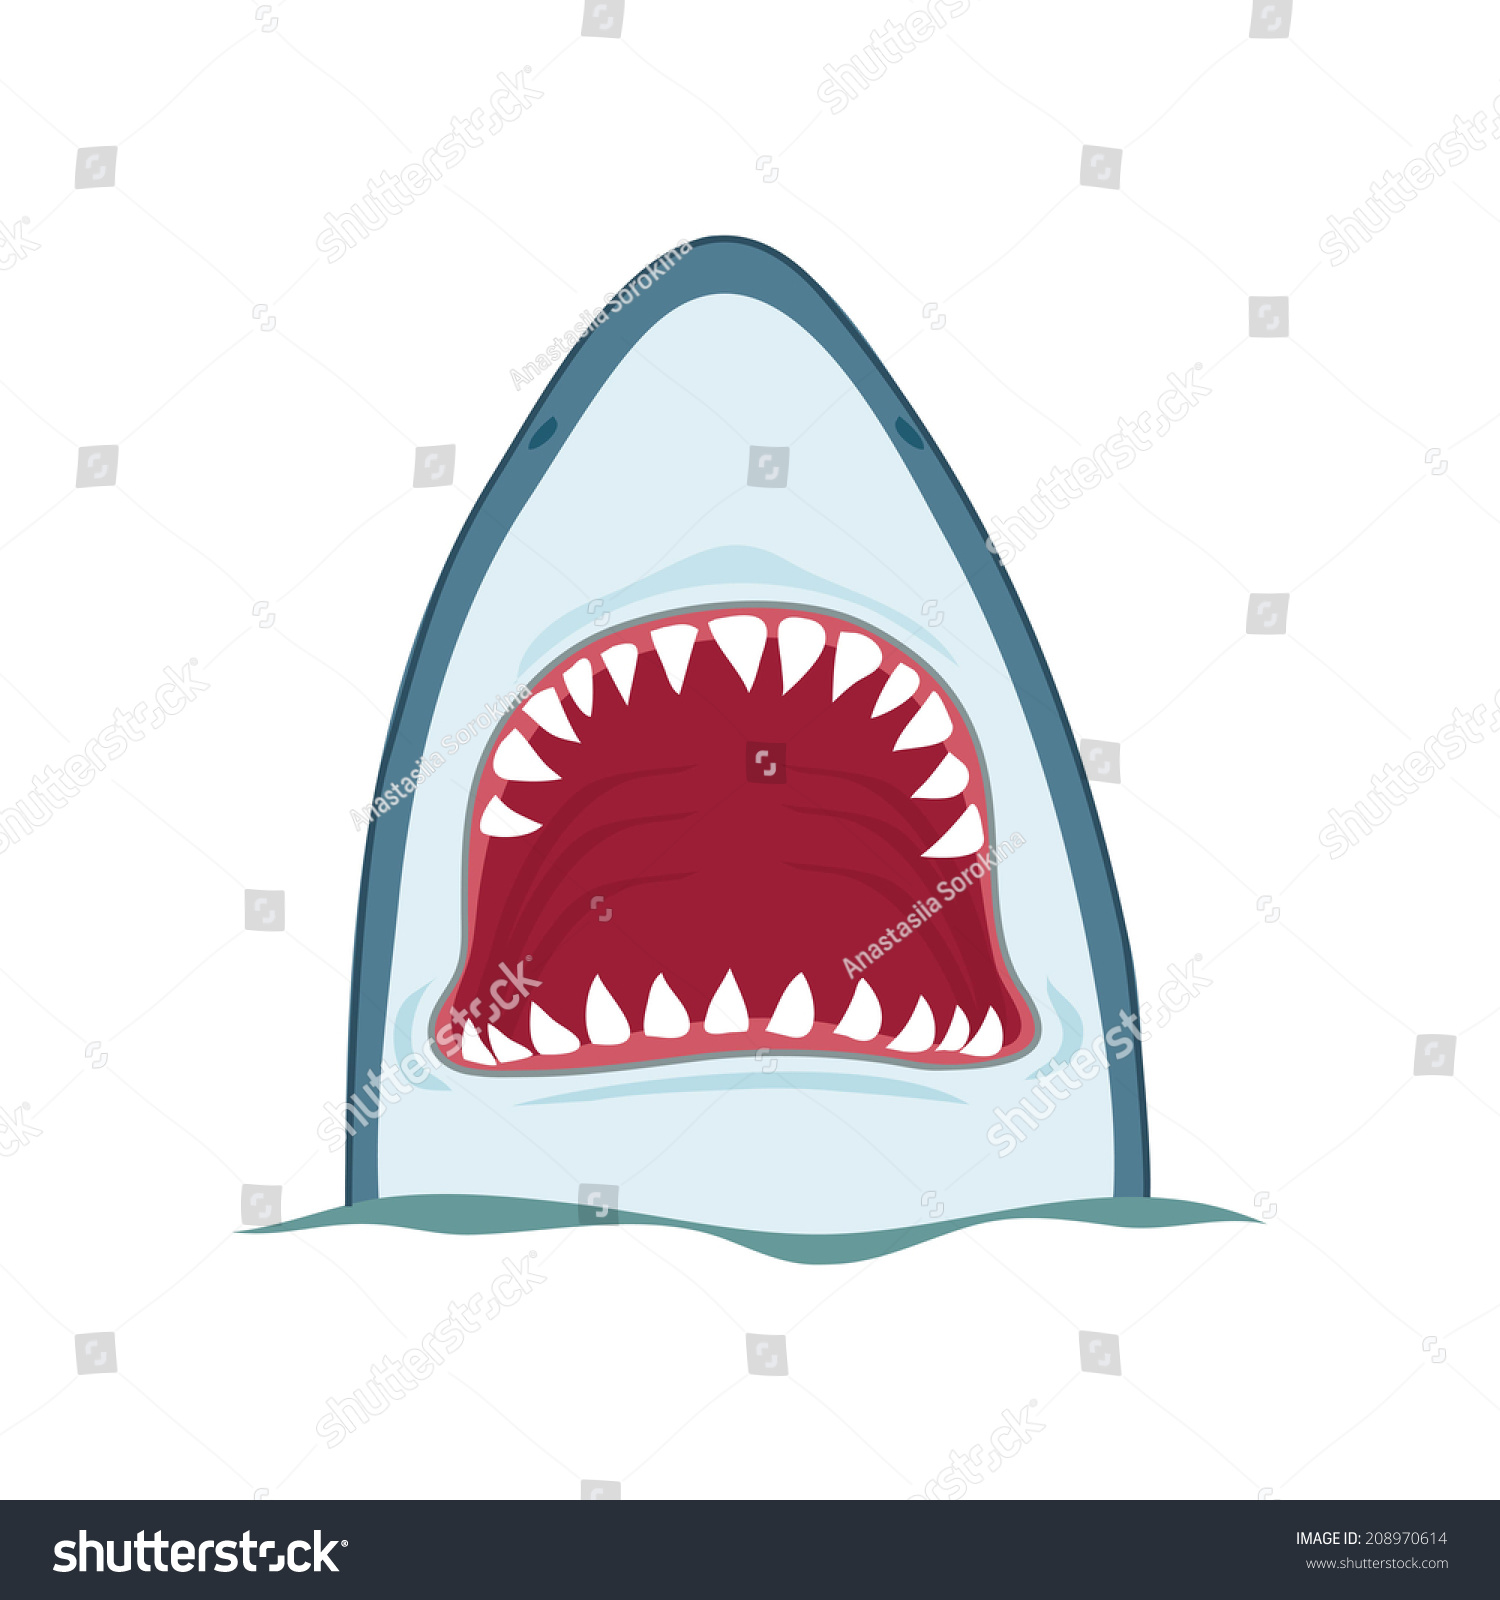 Shark Open Mouth Vector Illustration On Stock Vector HD (Royalty ... for shark drawing open mouth  568zmd